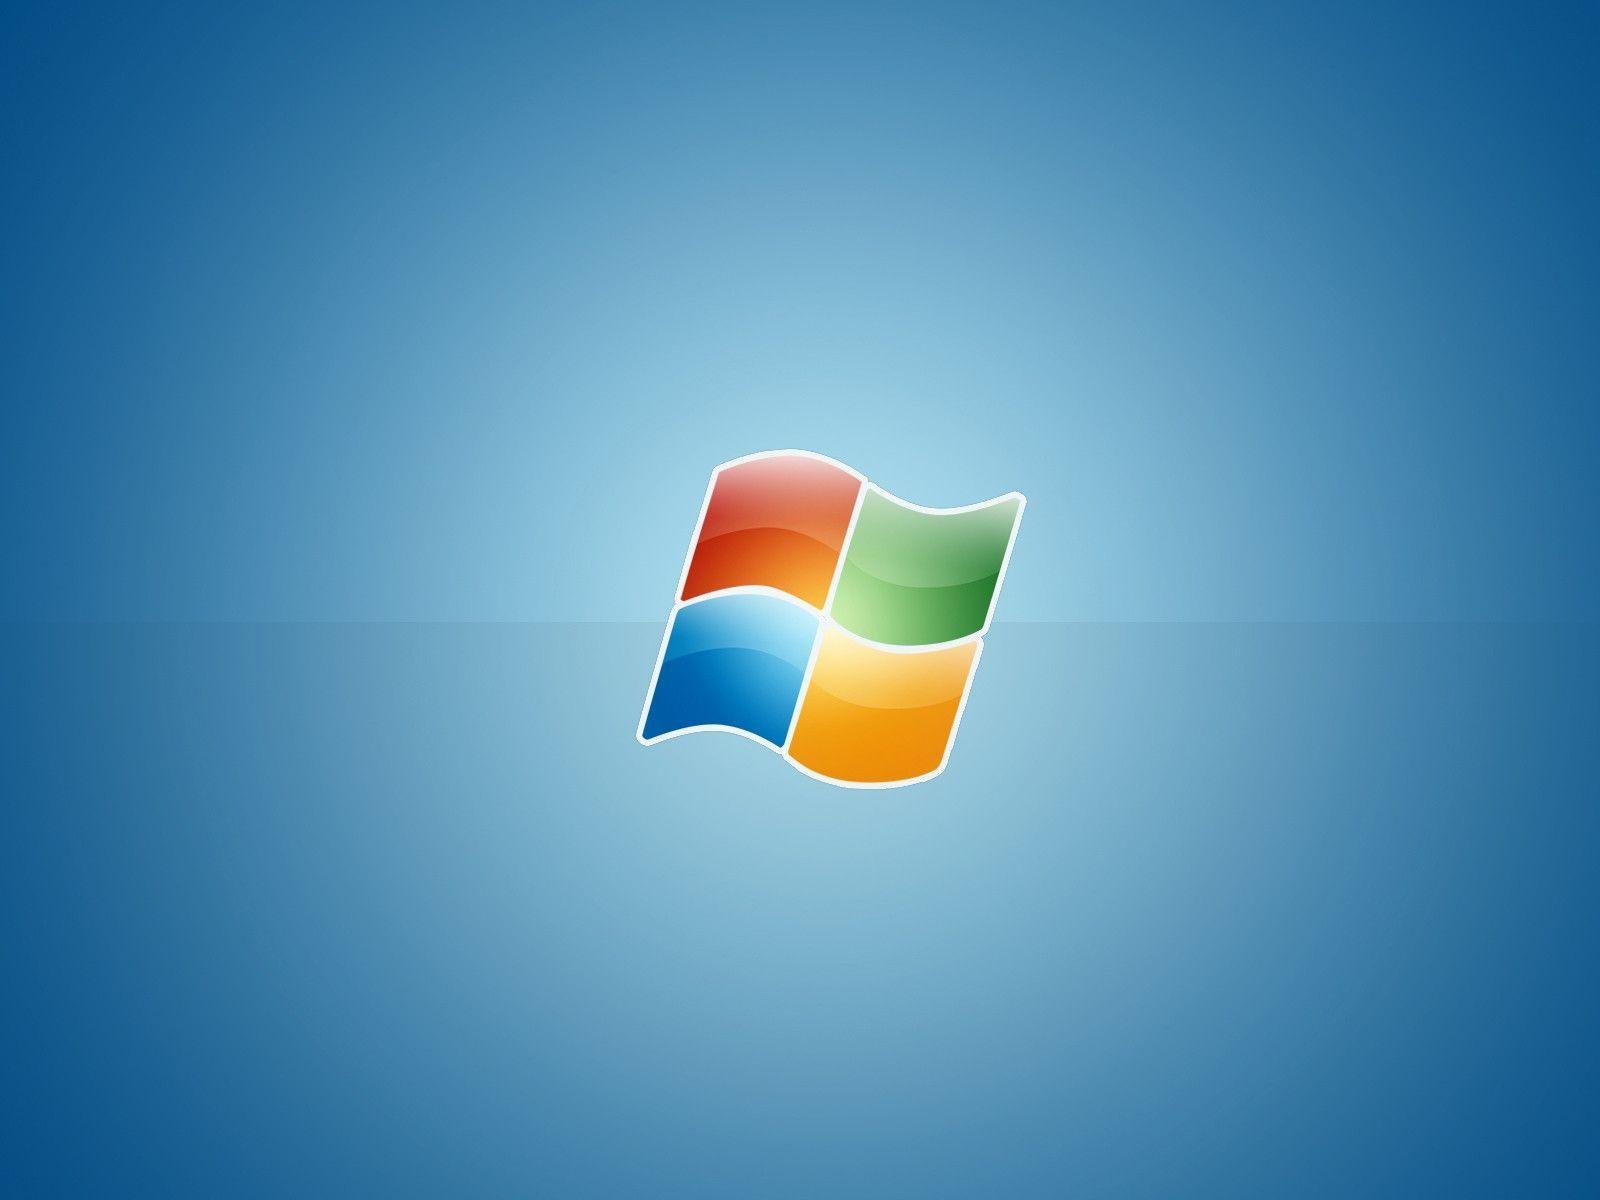 Hd 1600x1200 Big Windows Logo Desktop Wallpaper Backgrounds